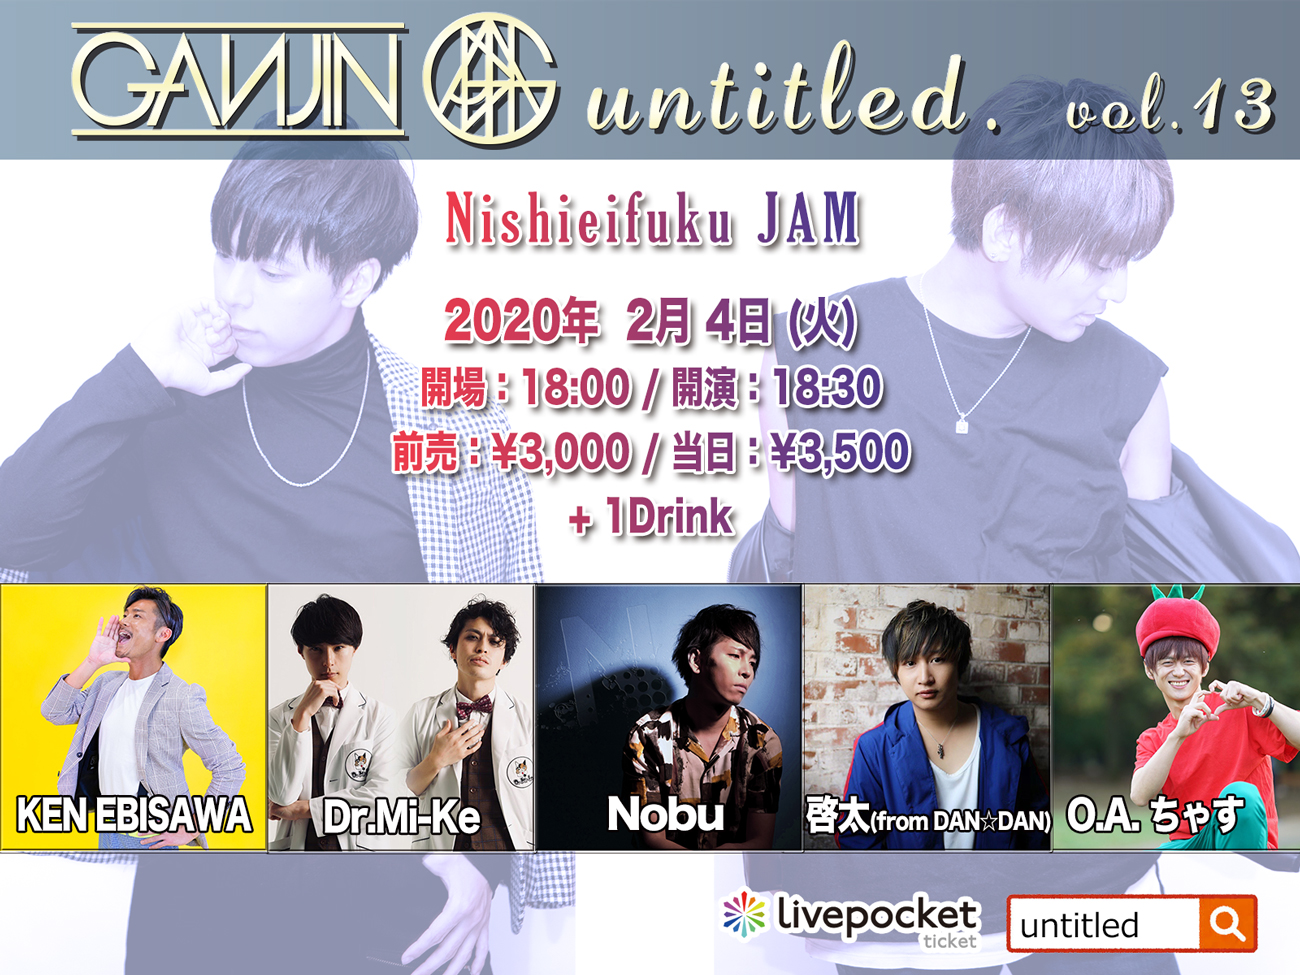 GANJIN presents 「untitled. vol.13」